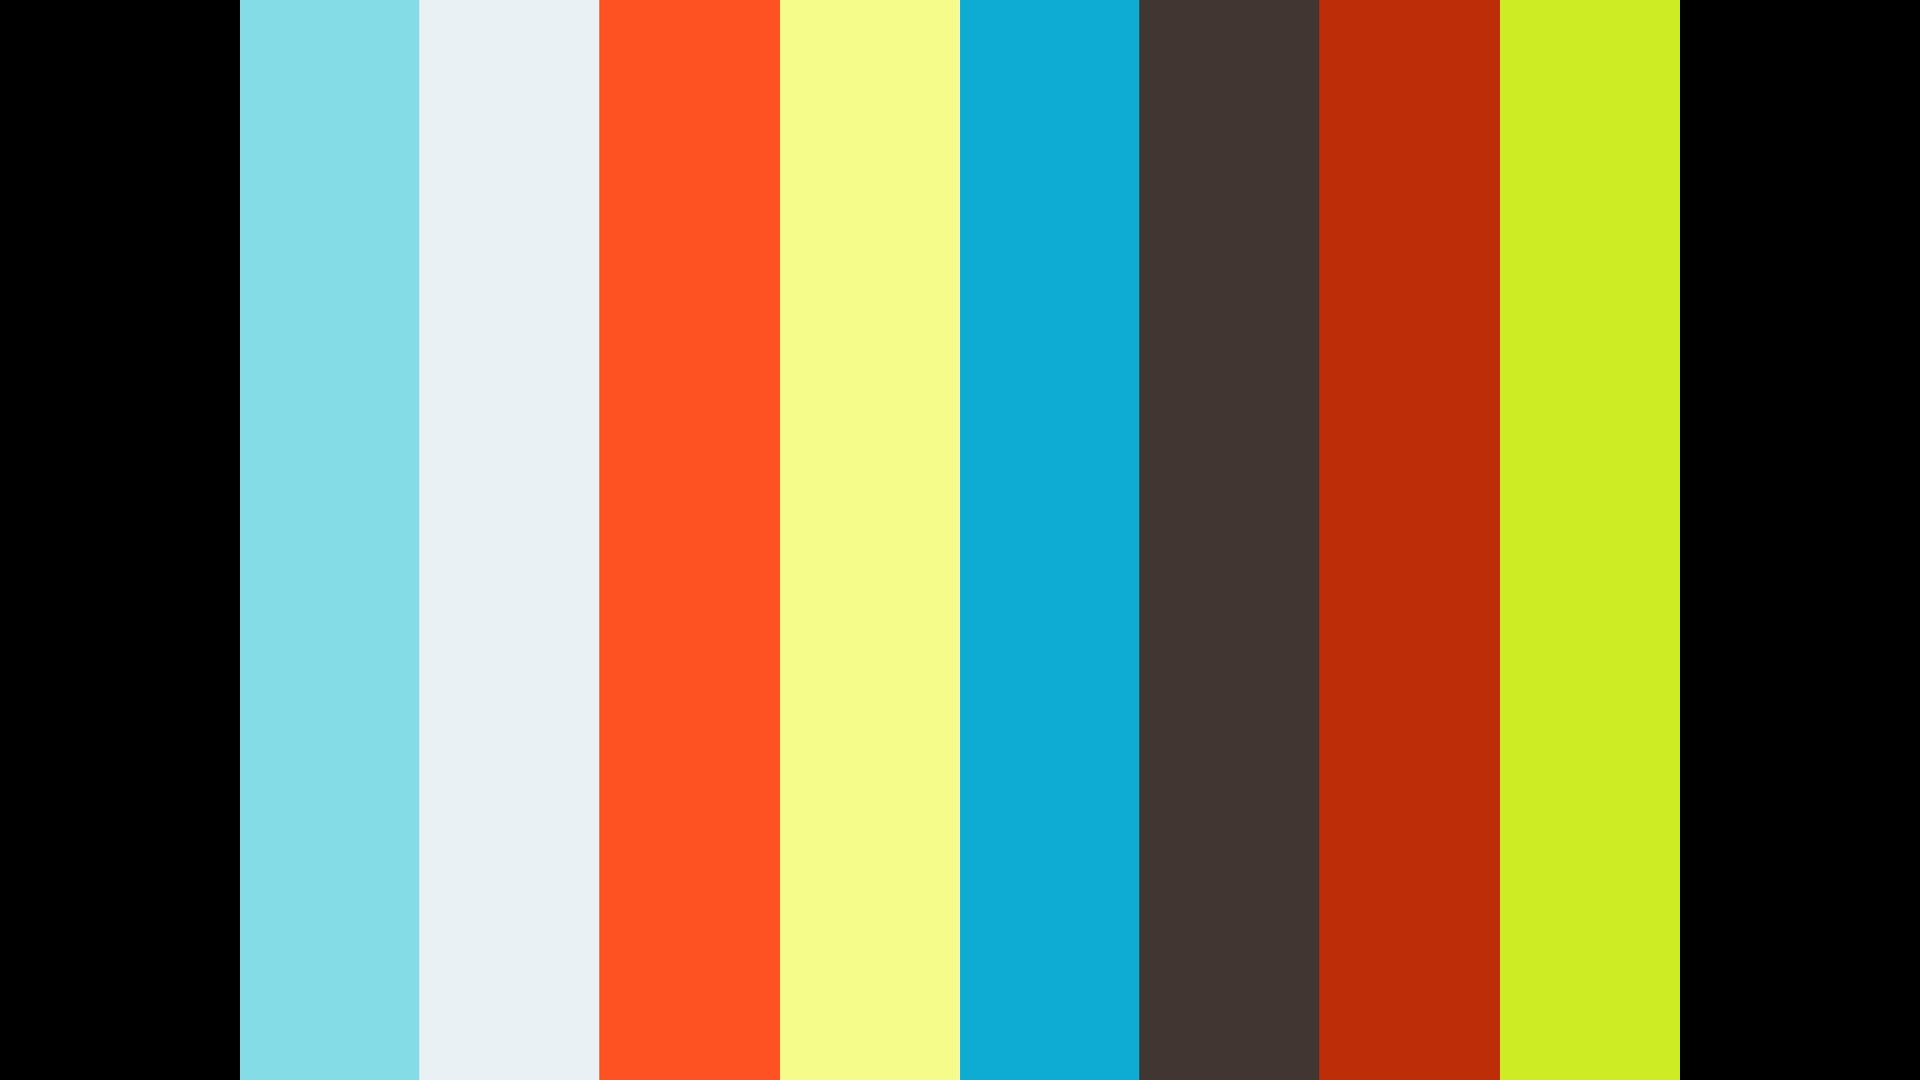 Vevo Presents - Bastille, Good Grief